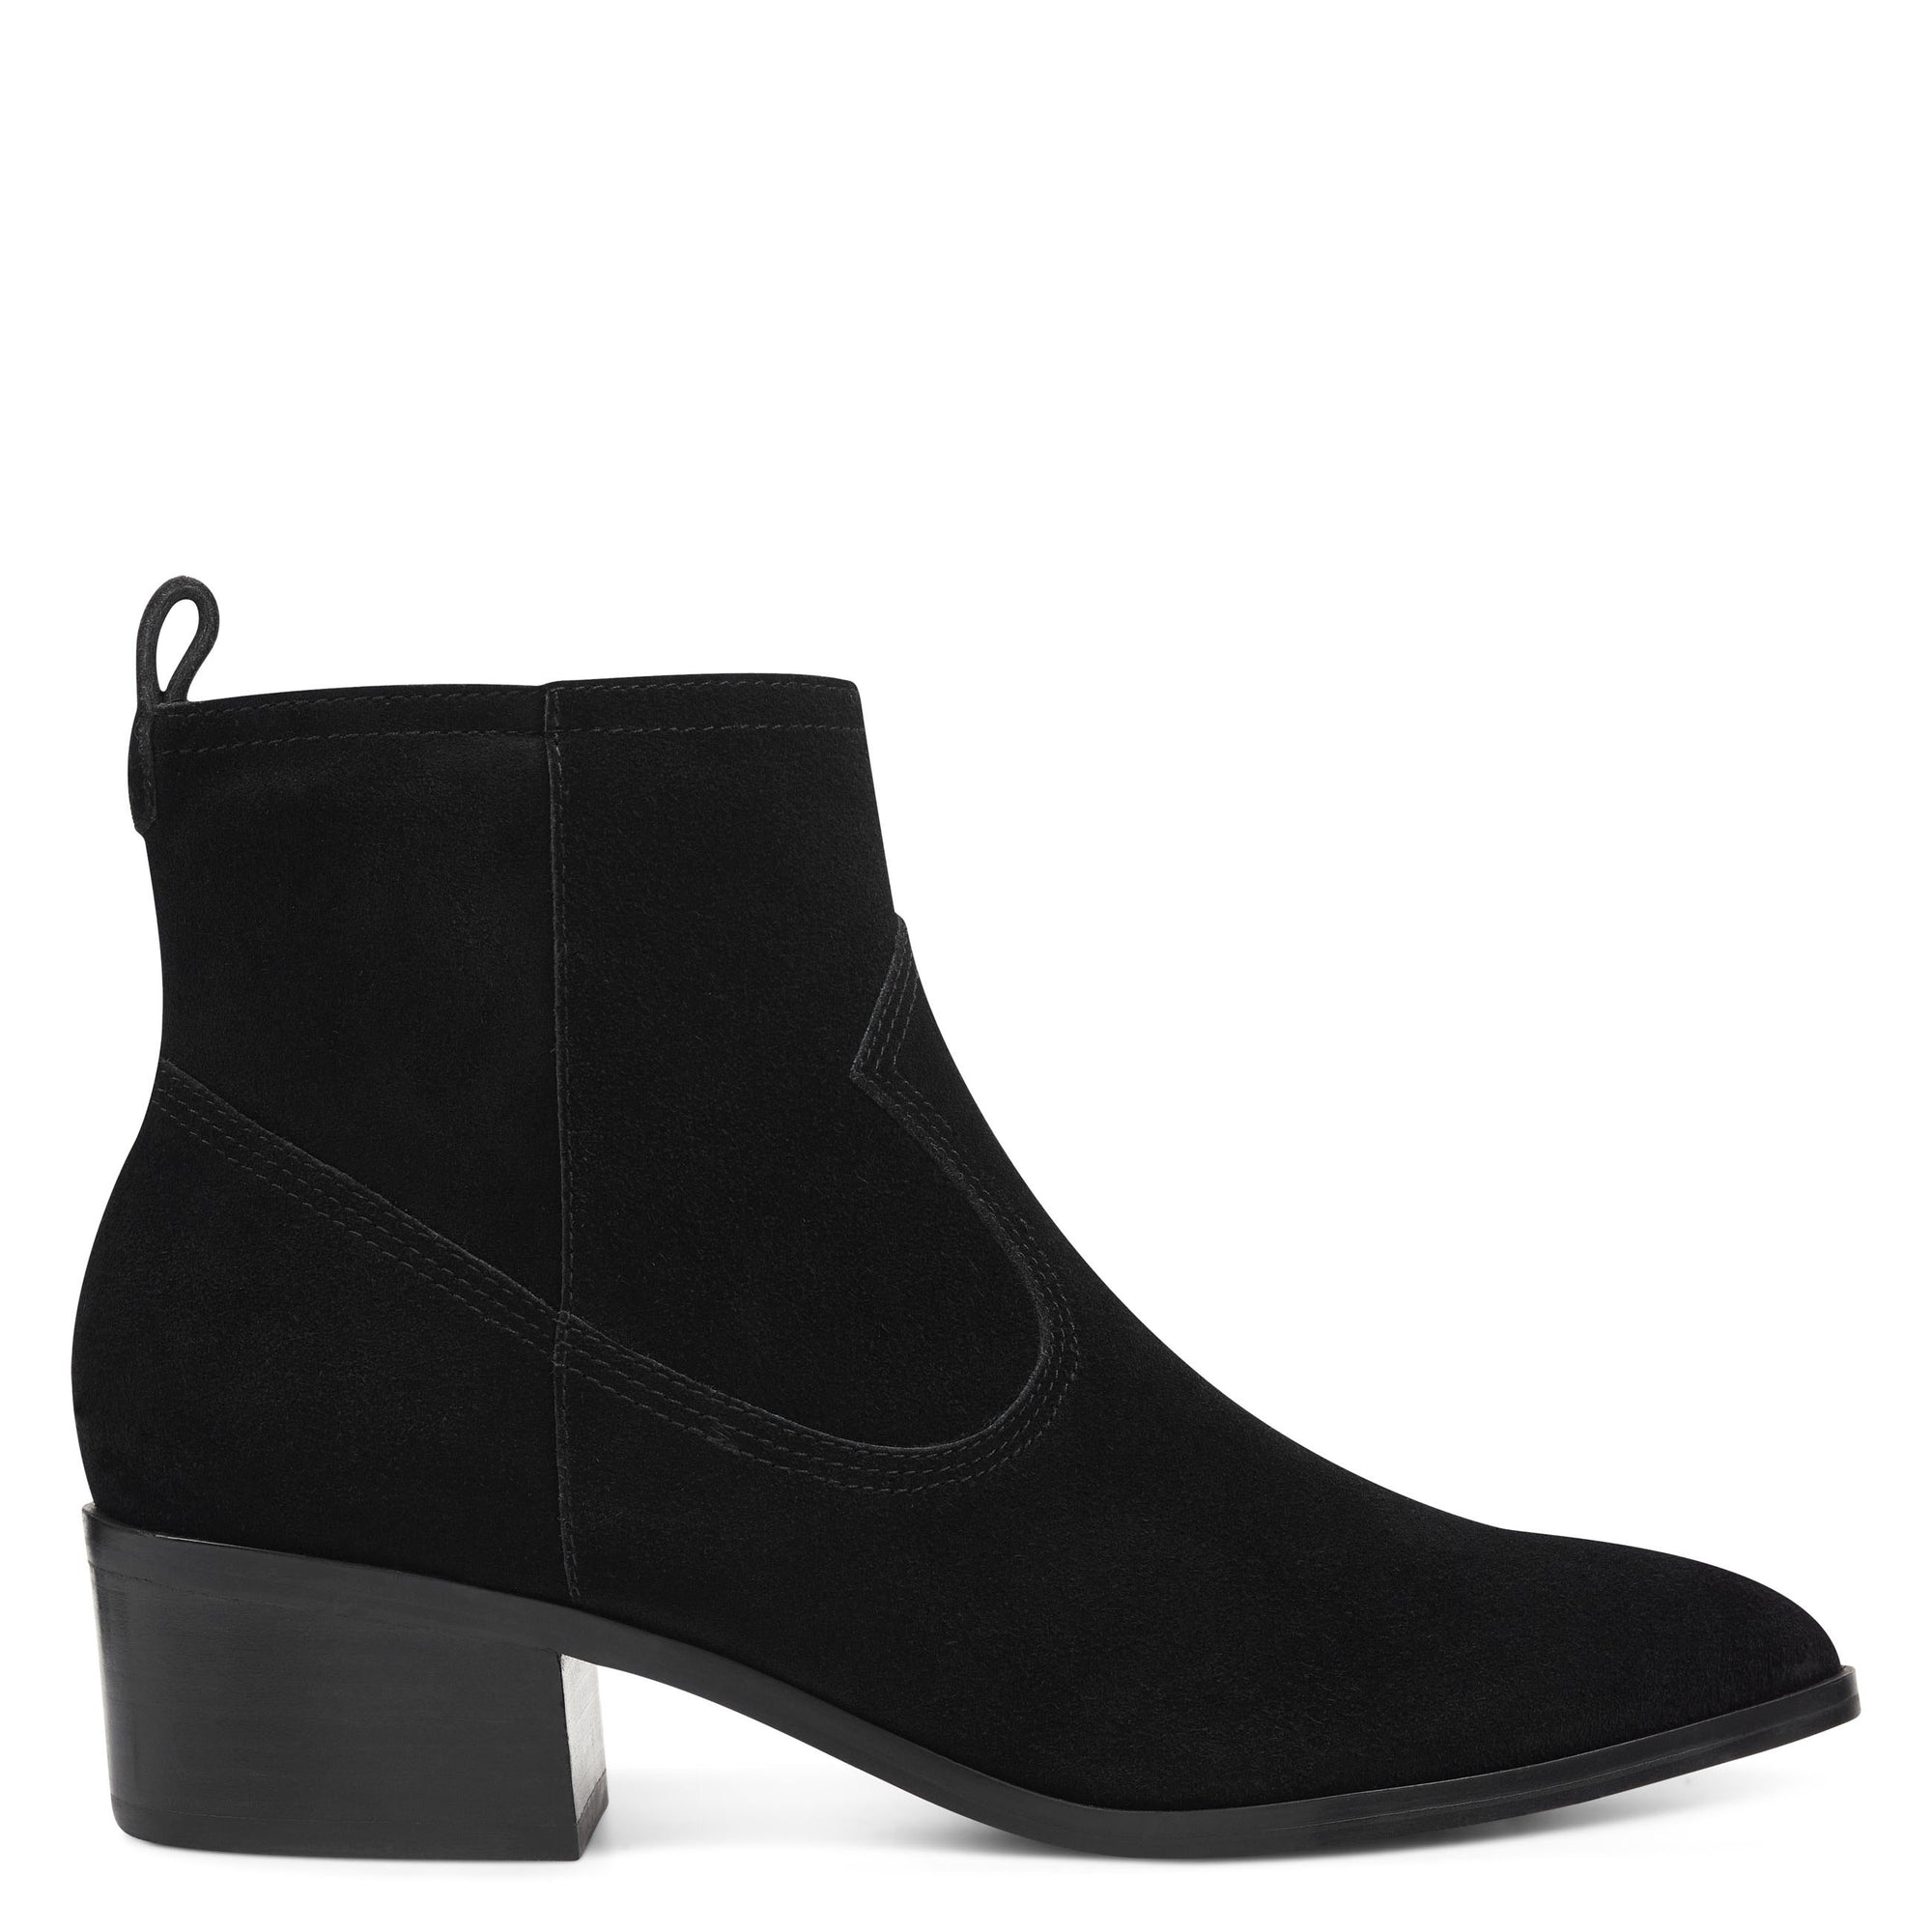 javan-booties-in-black-suede